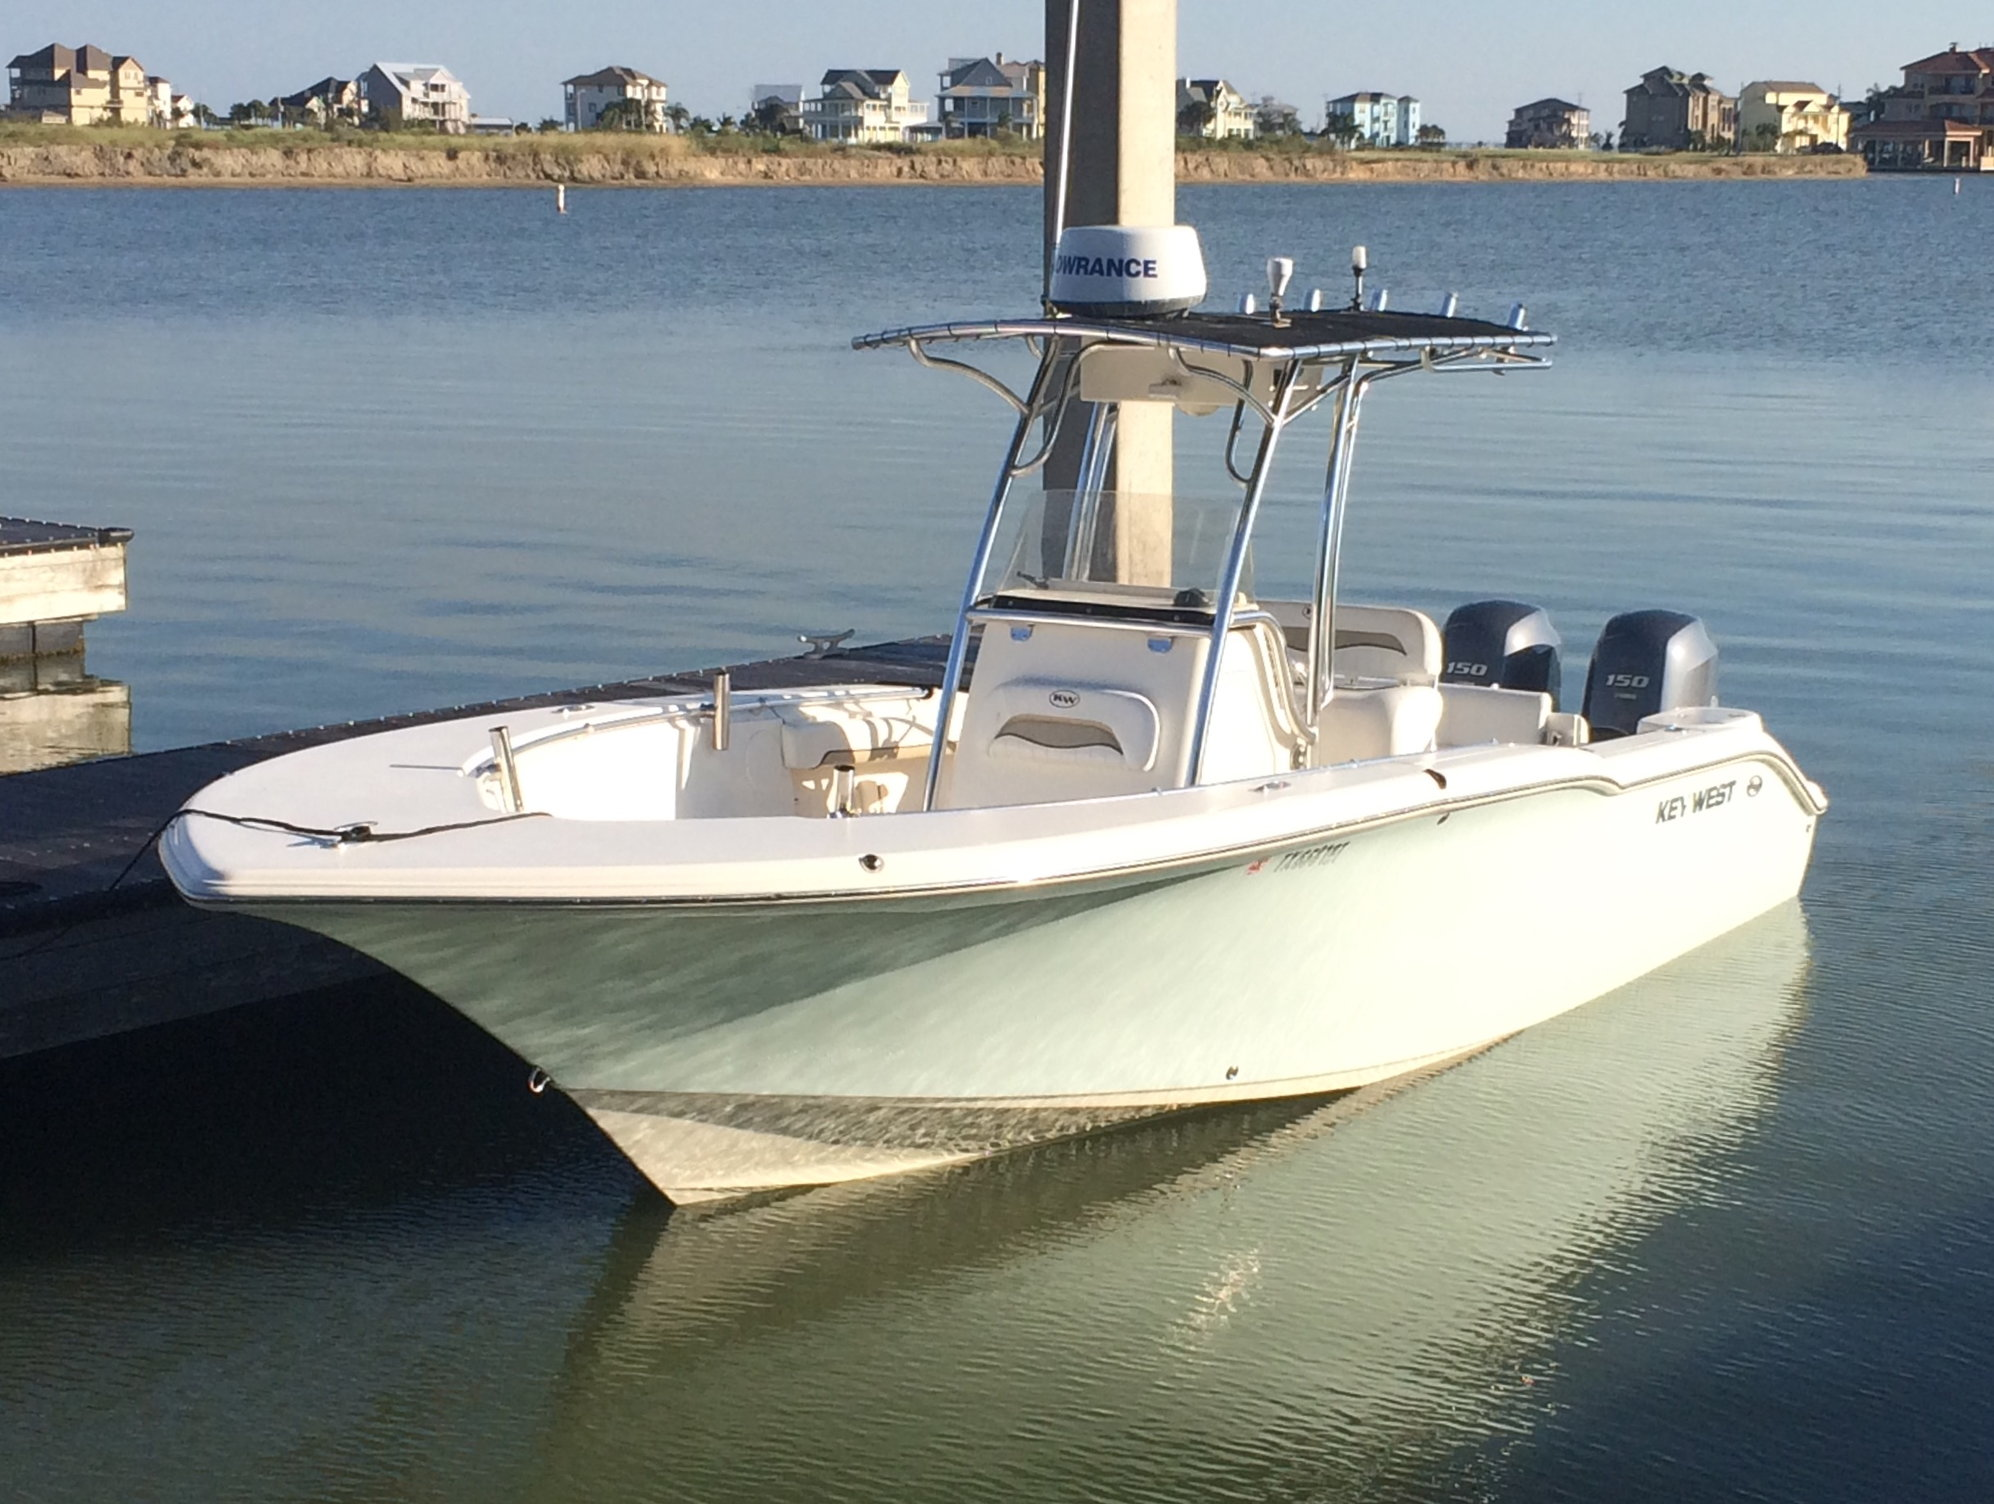 Key West 244cc For Sale 2010 2012 Model With Twin Yamahas The Hull Truth Boating And Fishing Forum